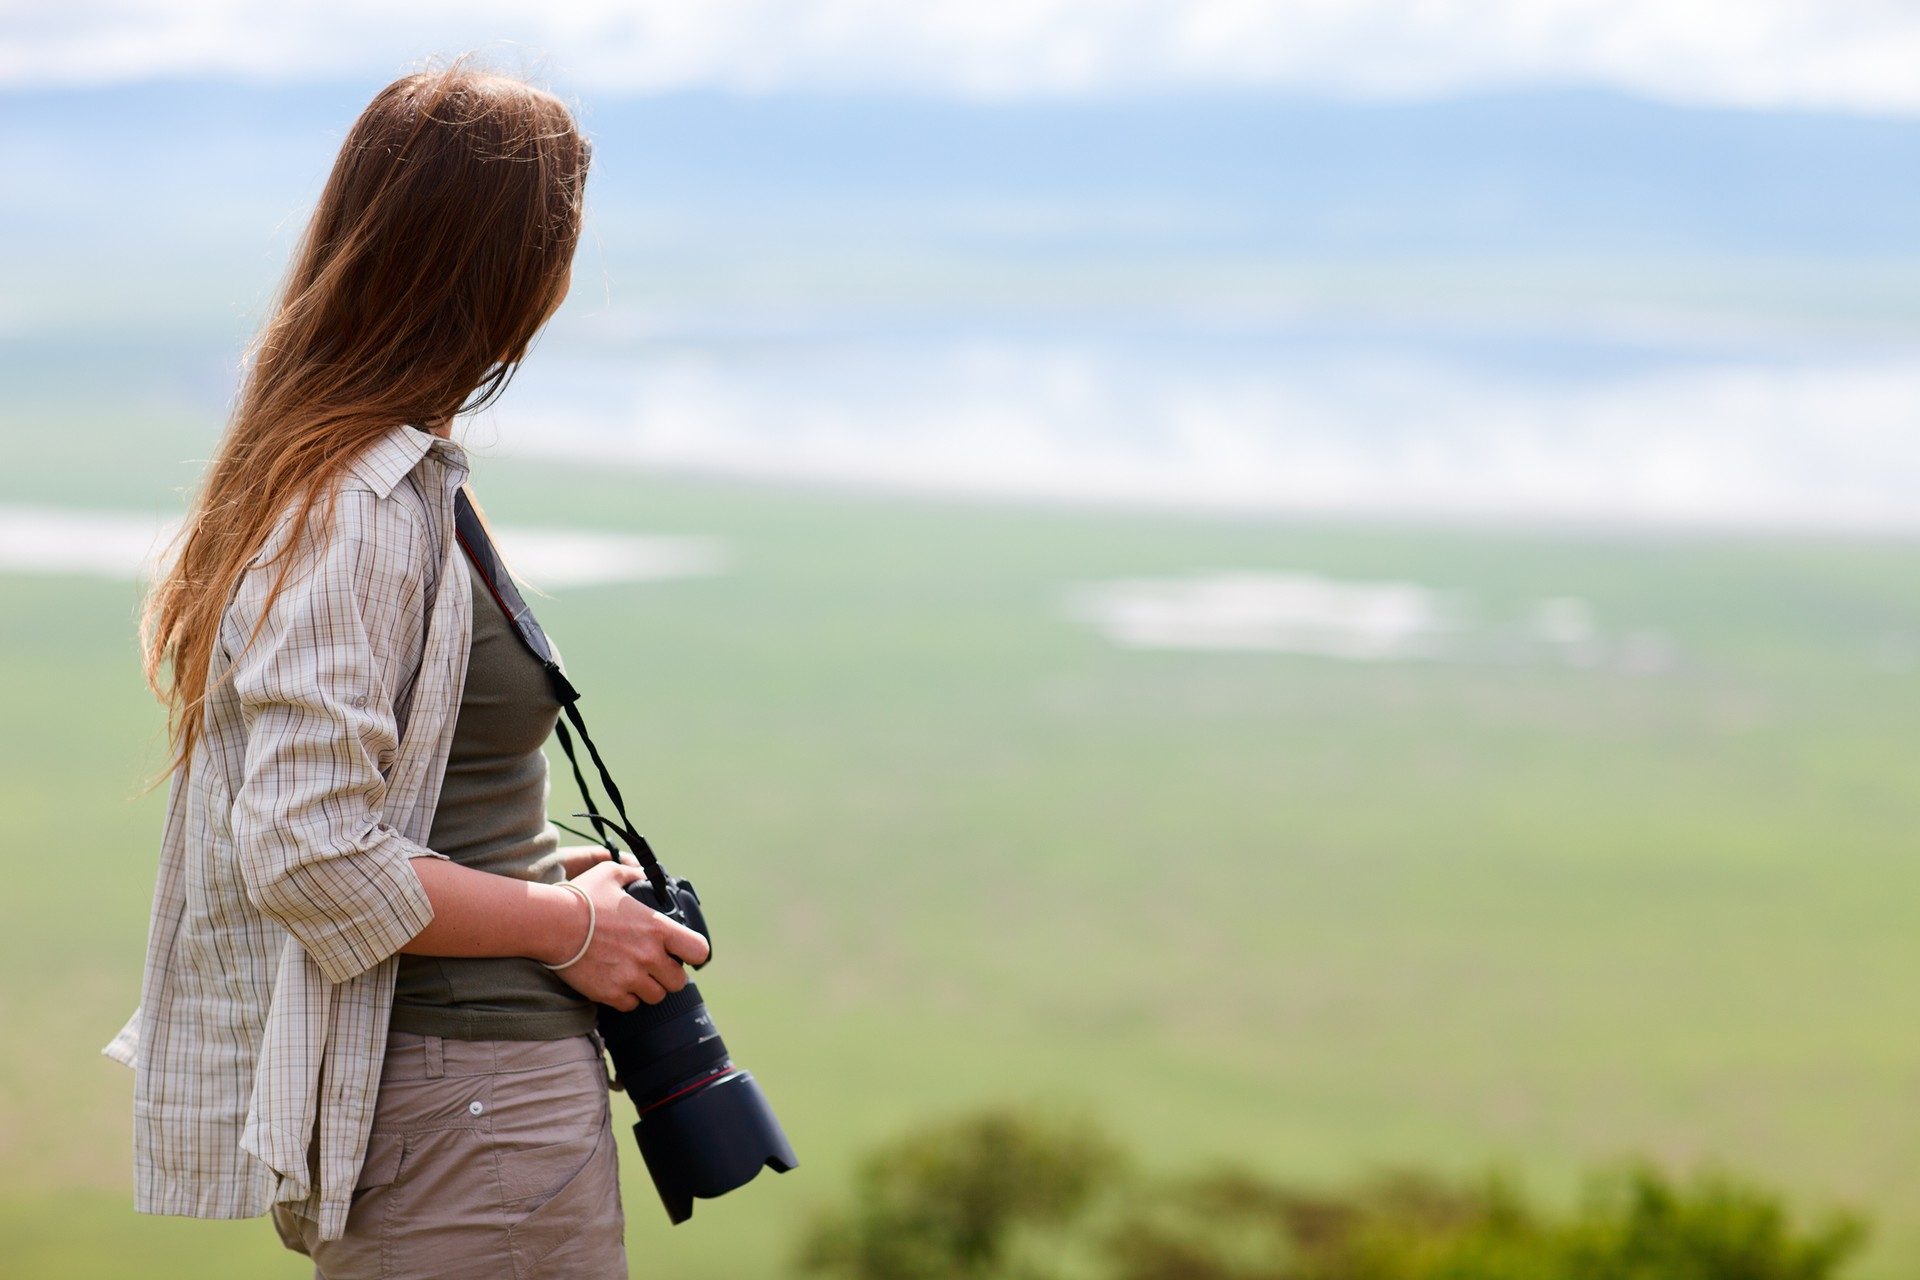 A woman enjoys the view of Ngorongoro crater in Tanzania